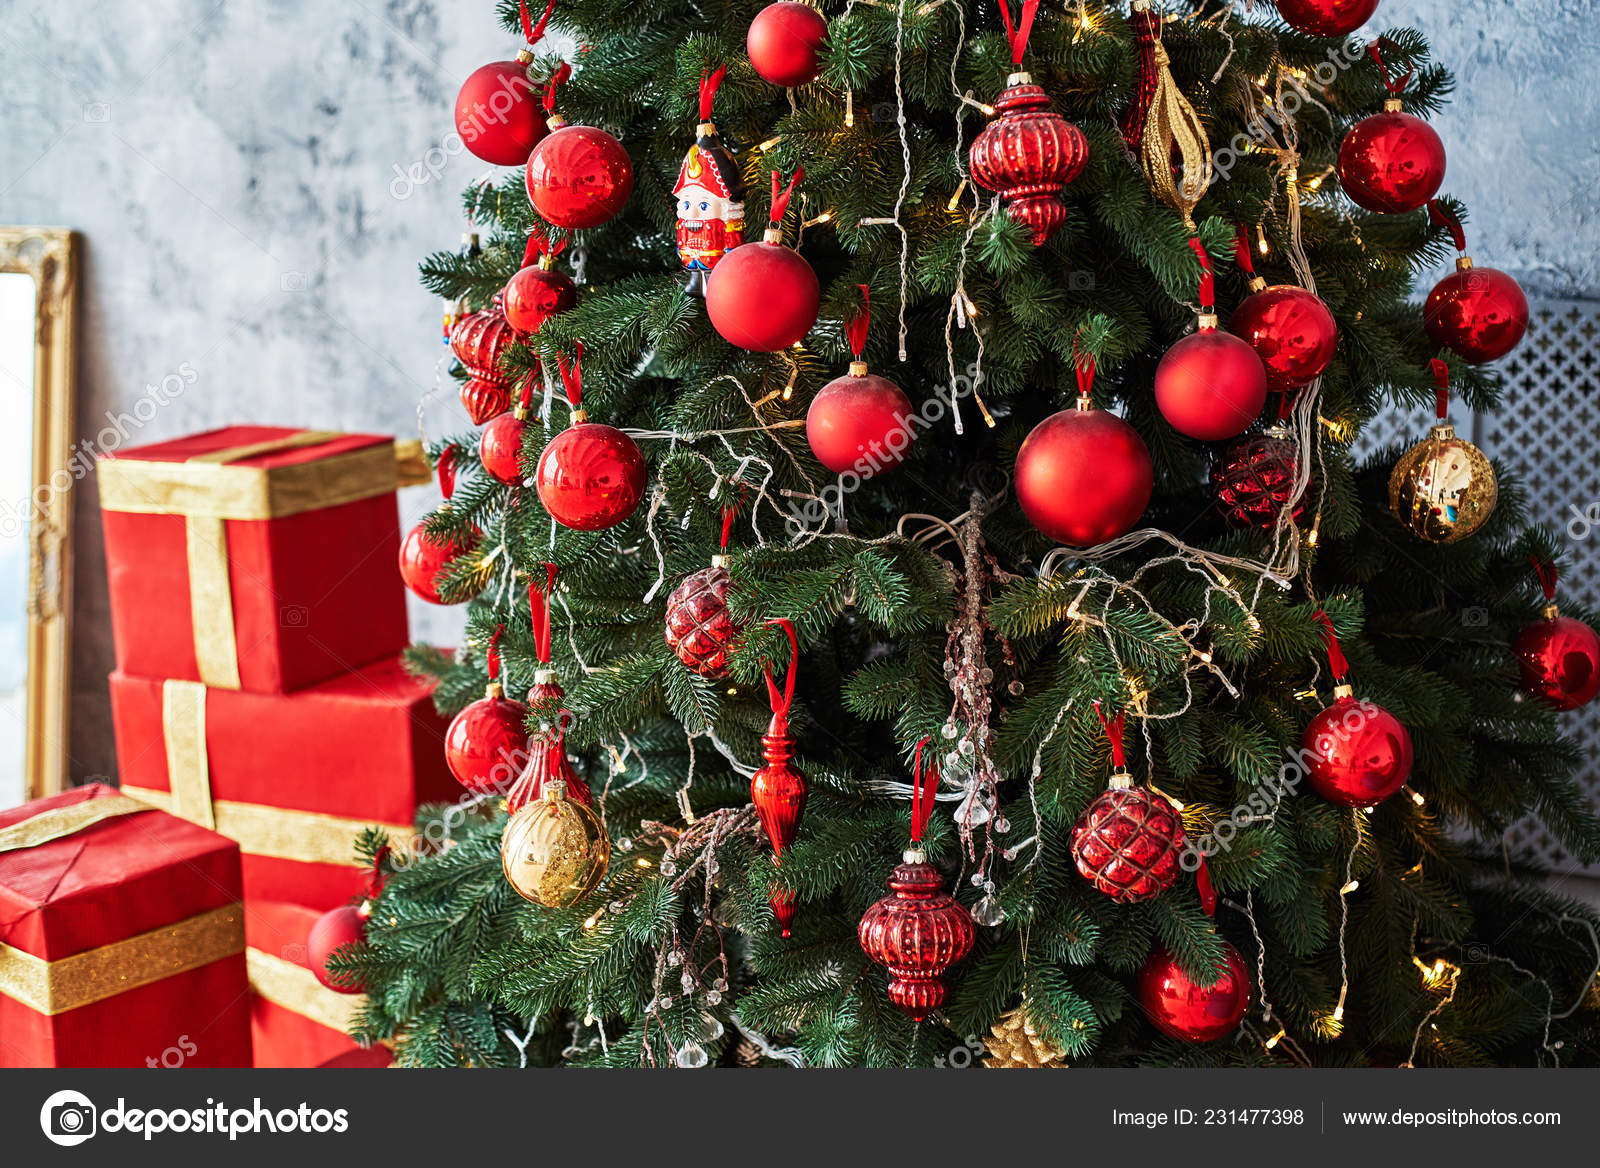 Christmas Tree Decorated Red Gold Baulbes Gift Boxes Golden Ribbon Stock Photo Image By C D Duda 231477398